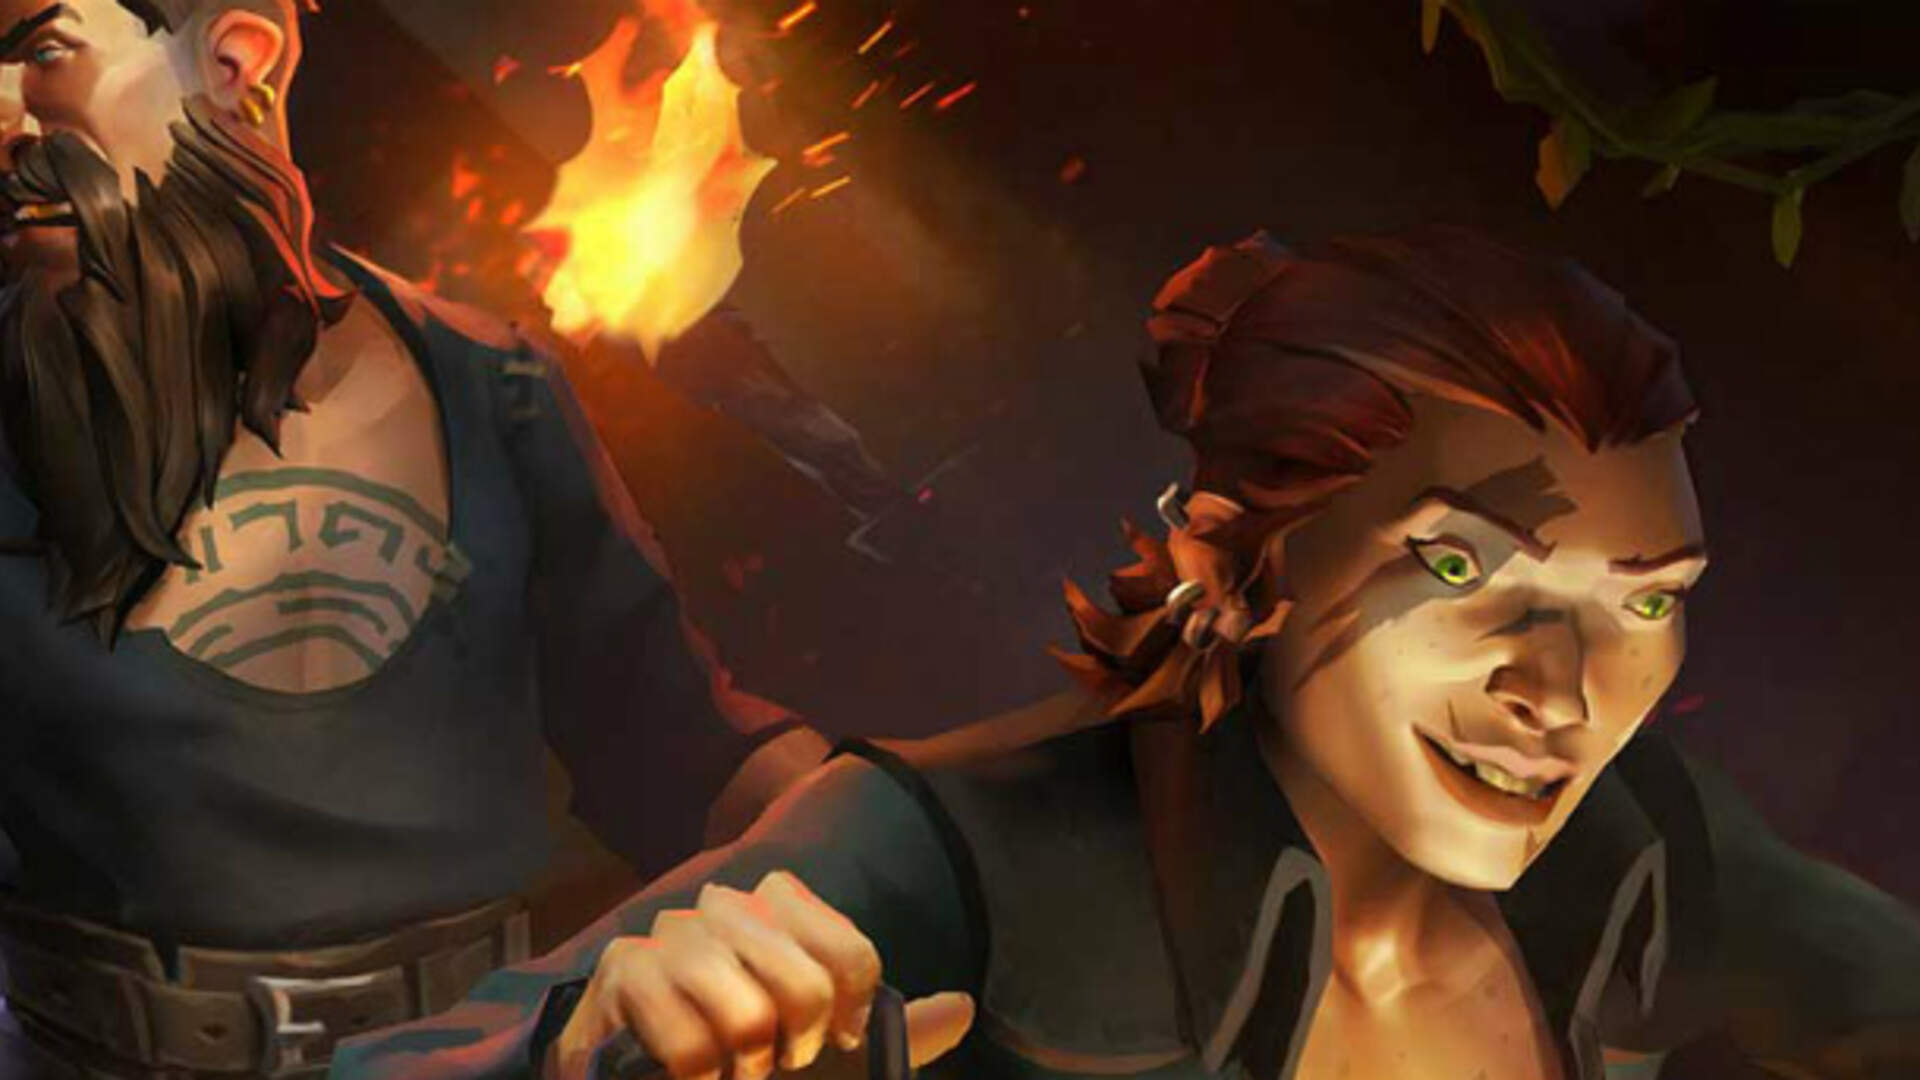 Sea of Thieves Requires a Good Crew for Maximum Fun and Plunder